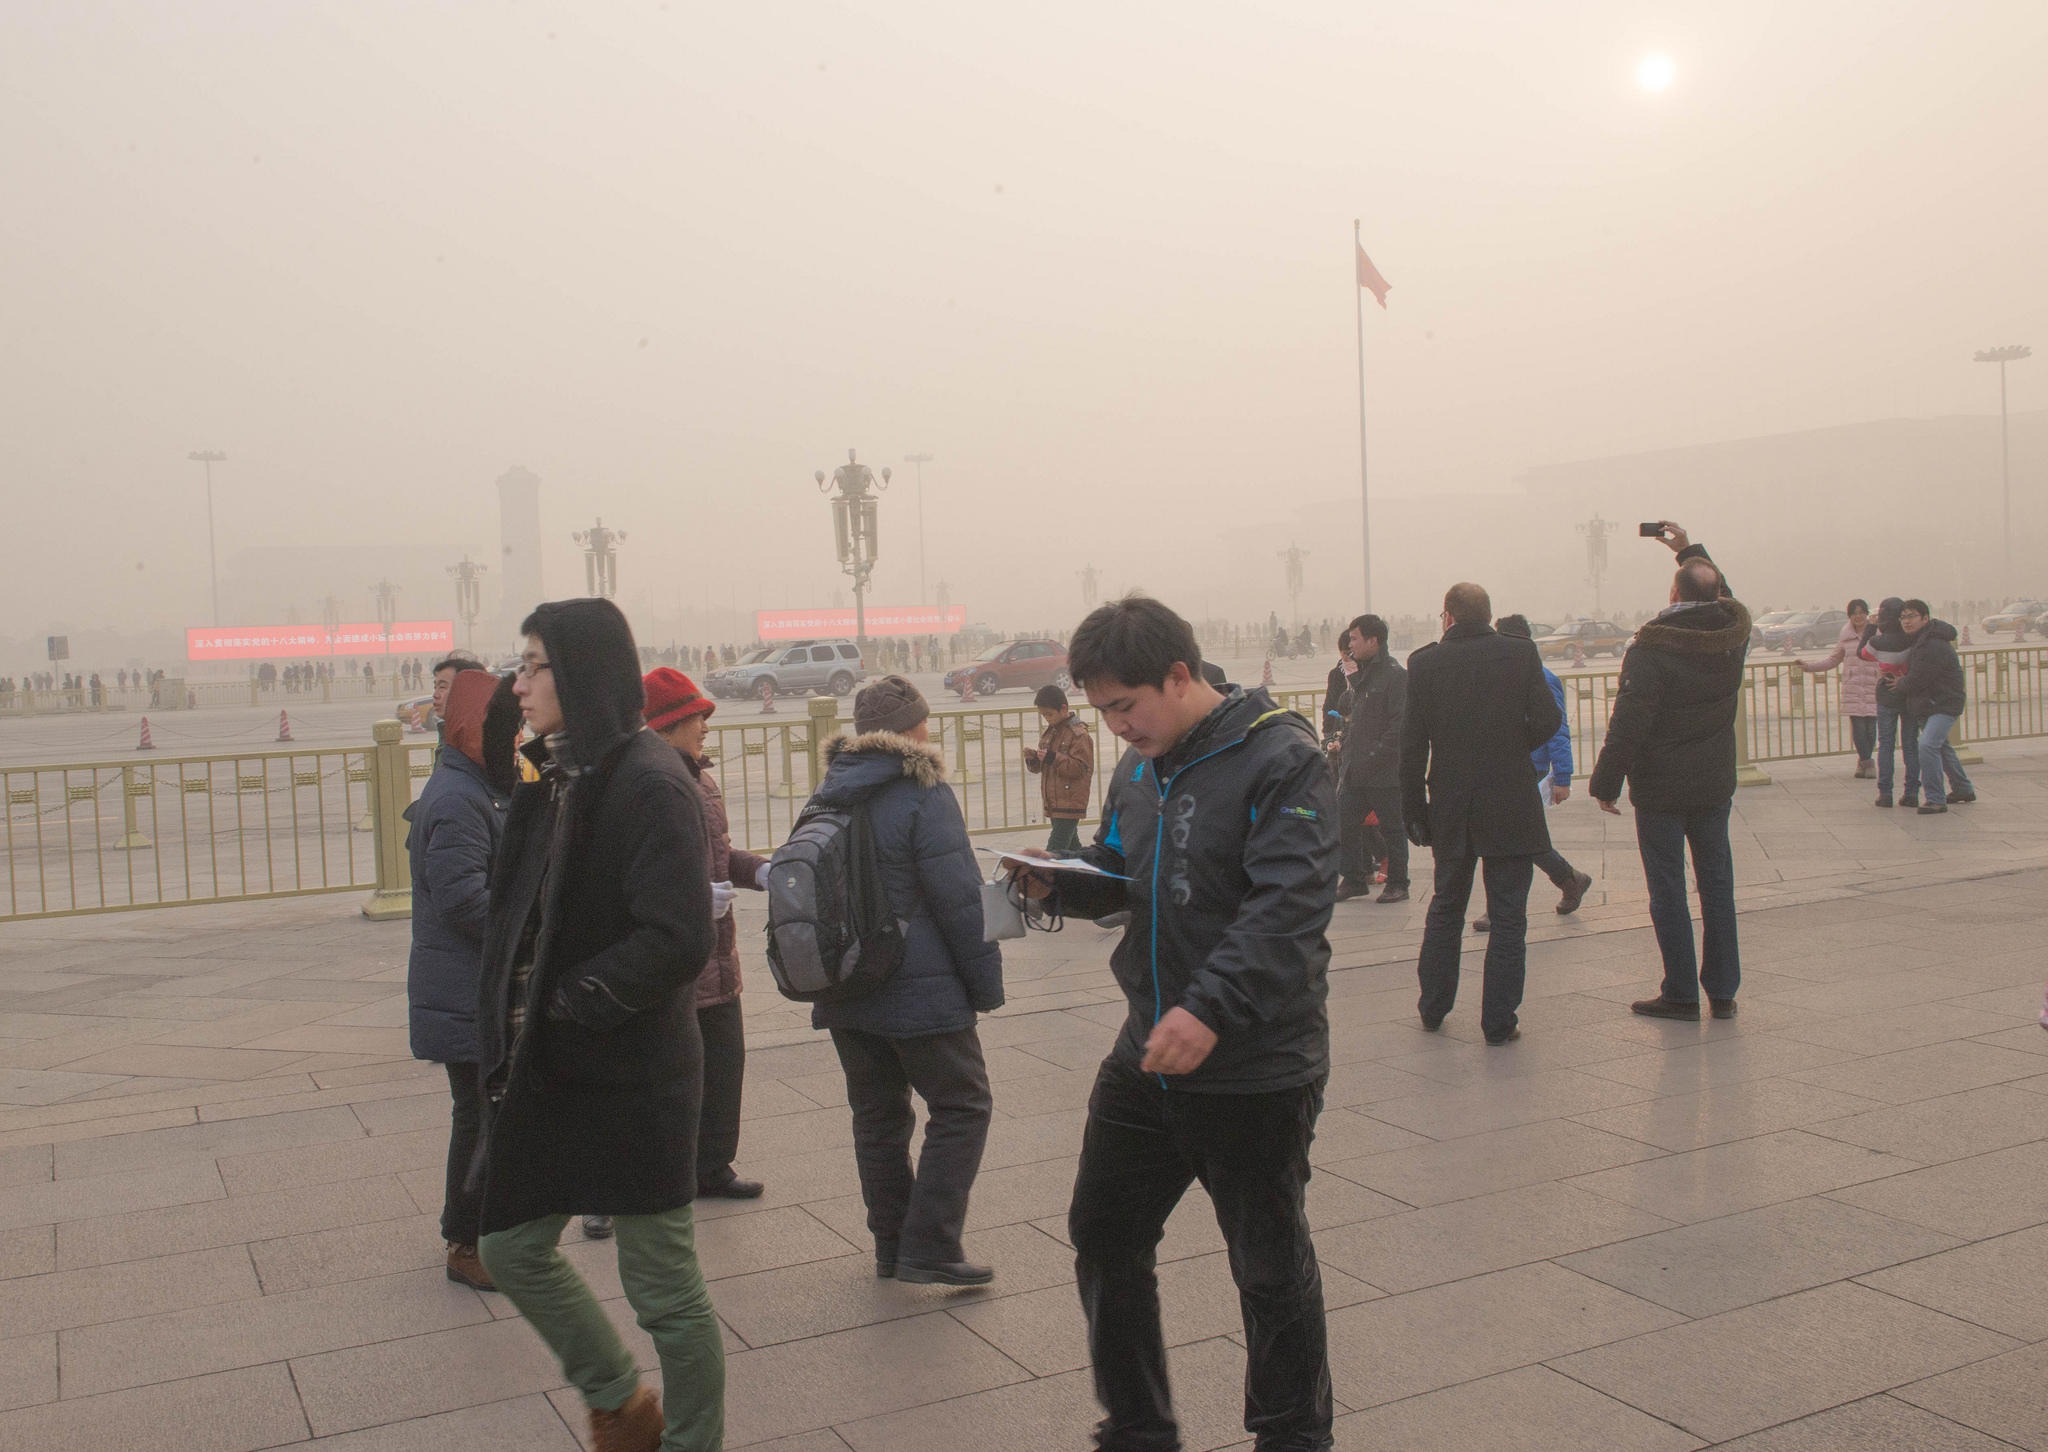 image:  Daytime in Tiananmen Square by   michael davis-burchat  via Flick. Air Quality Index: 500+